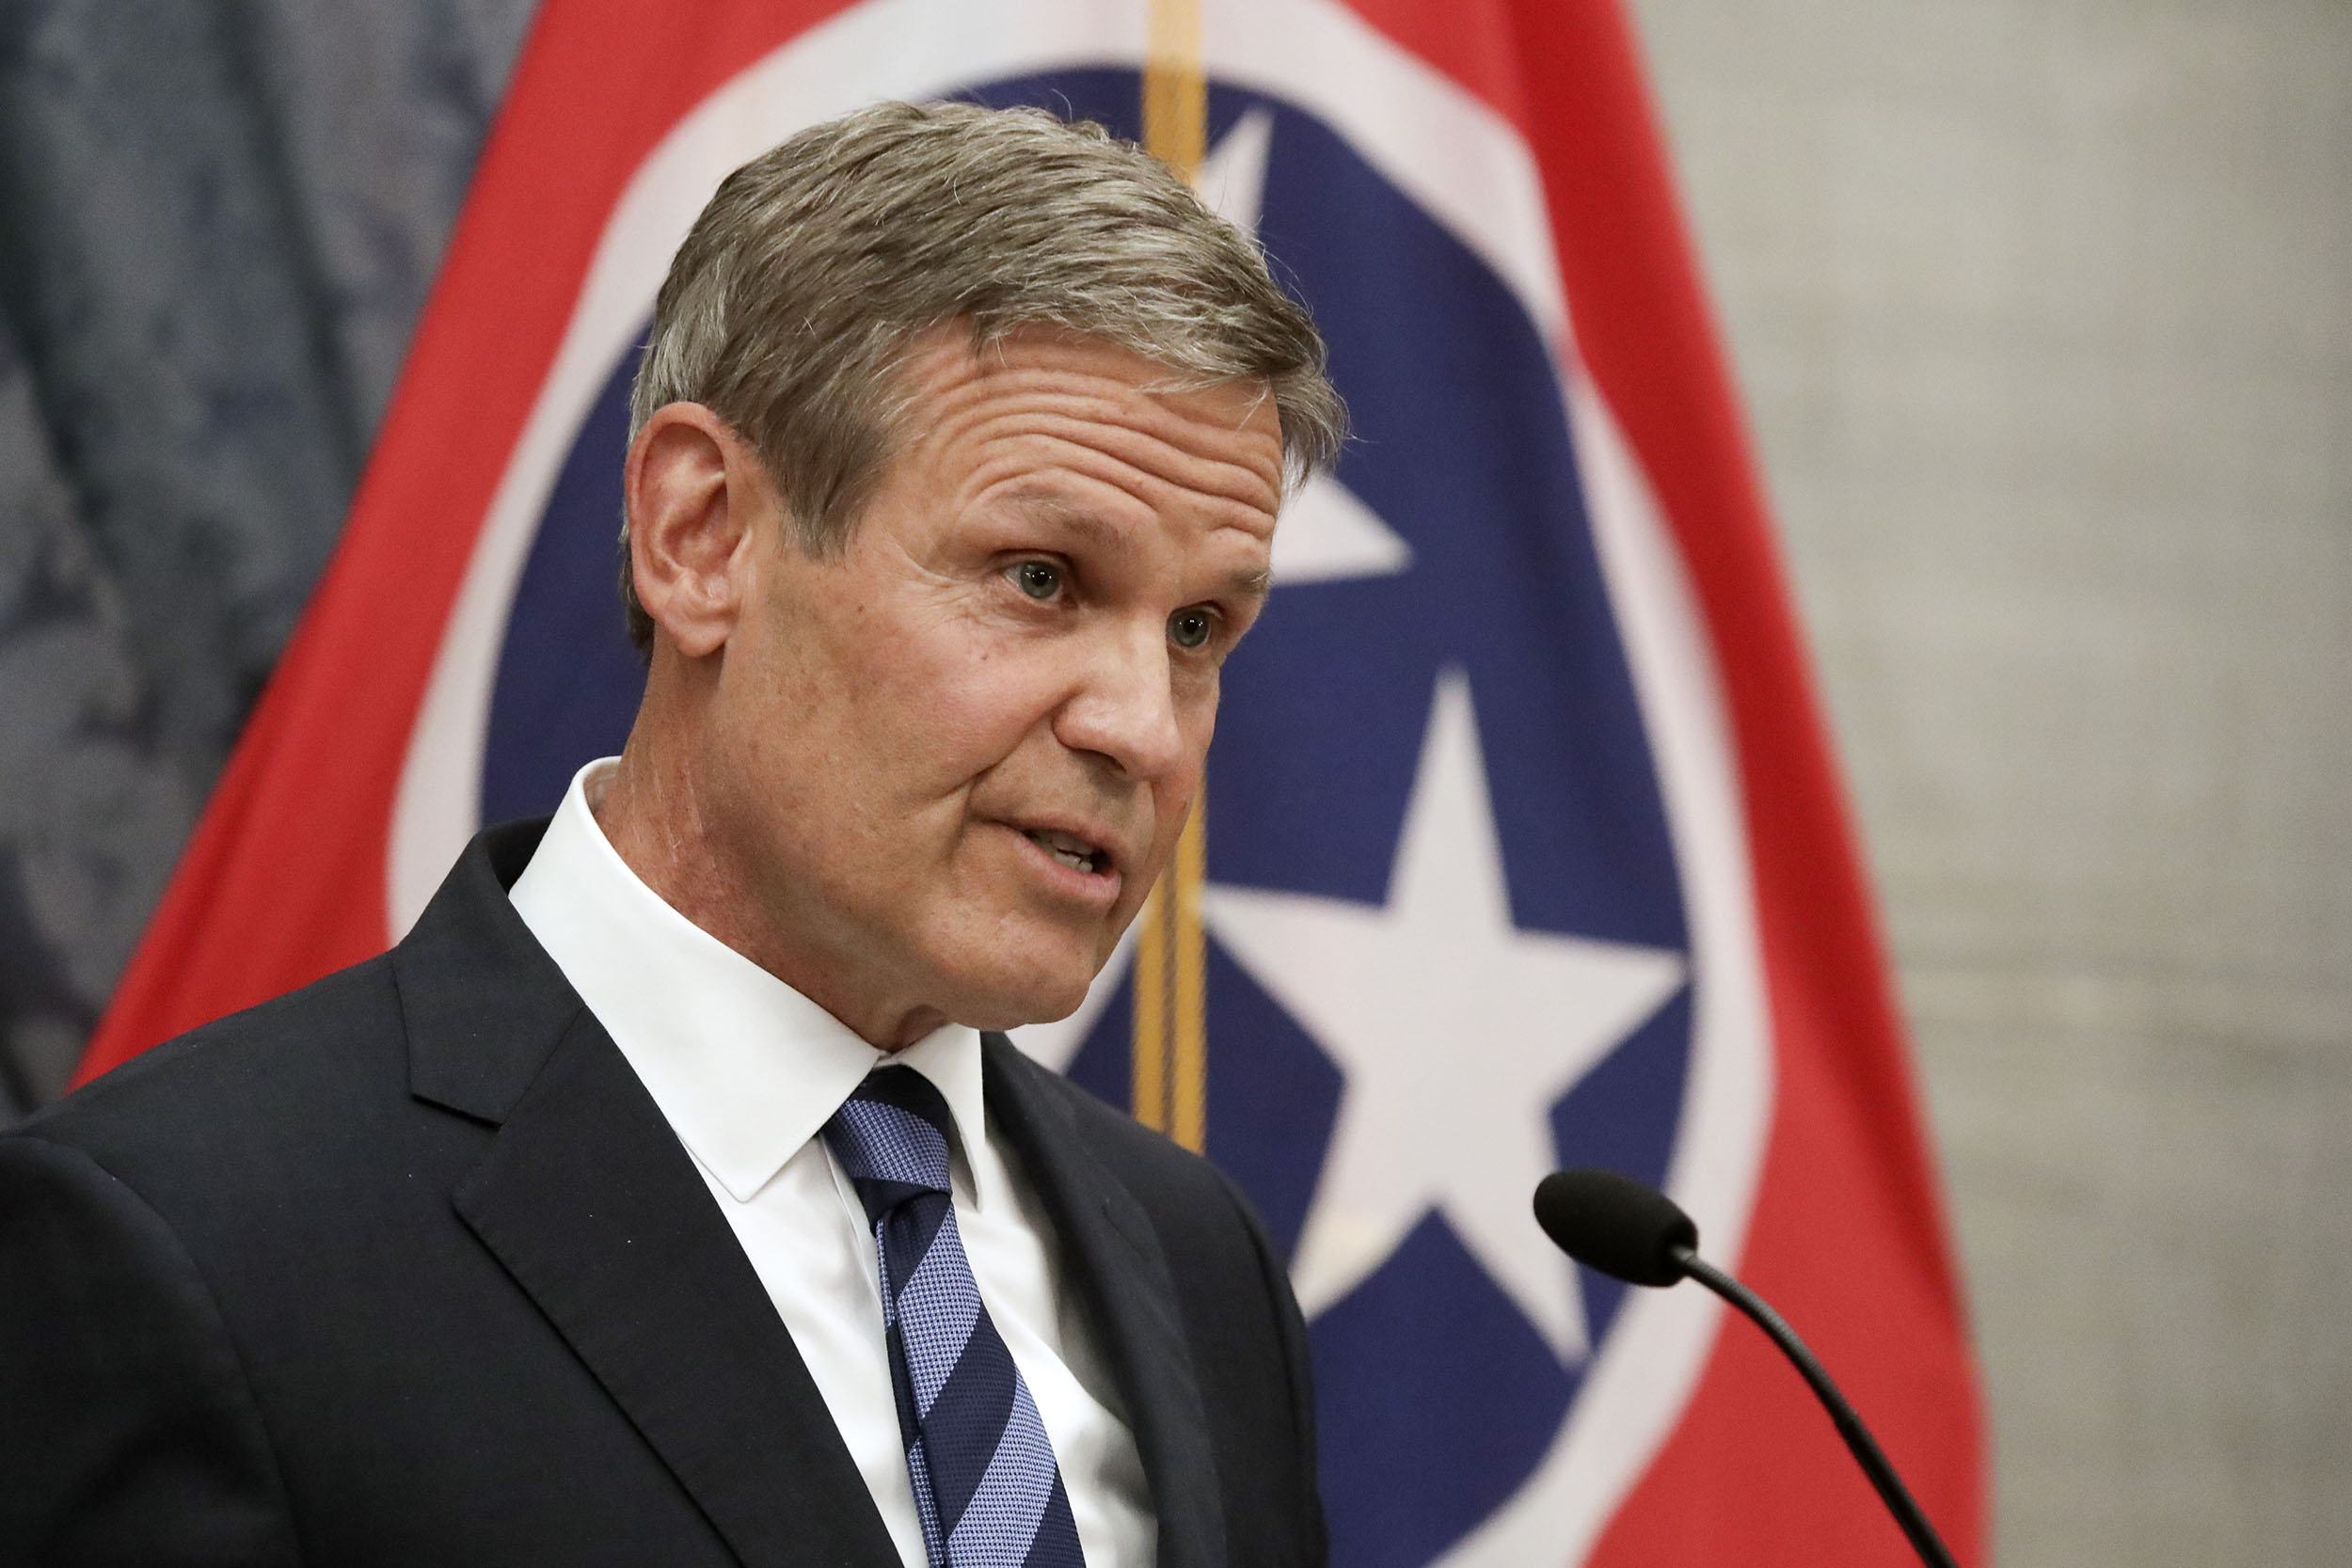 Gov. Bill Lee at a press conference on July 1 in Nashville, Tennessee.